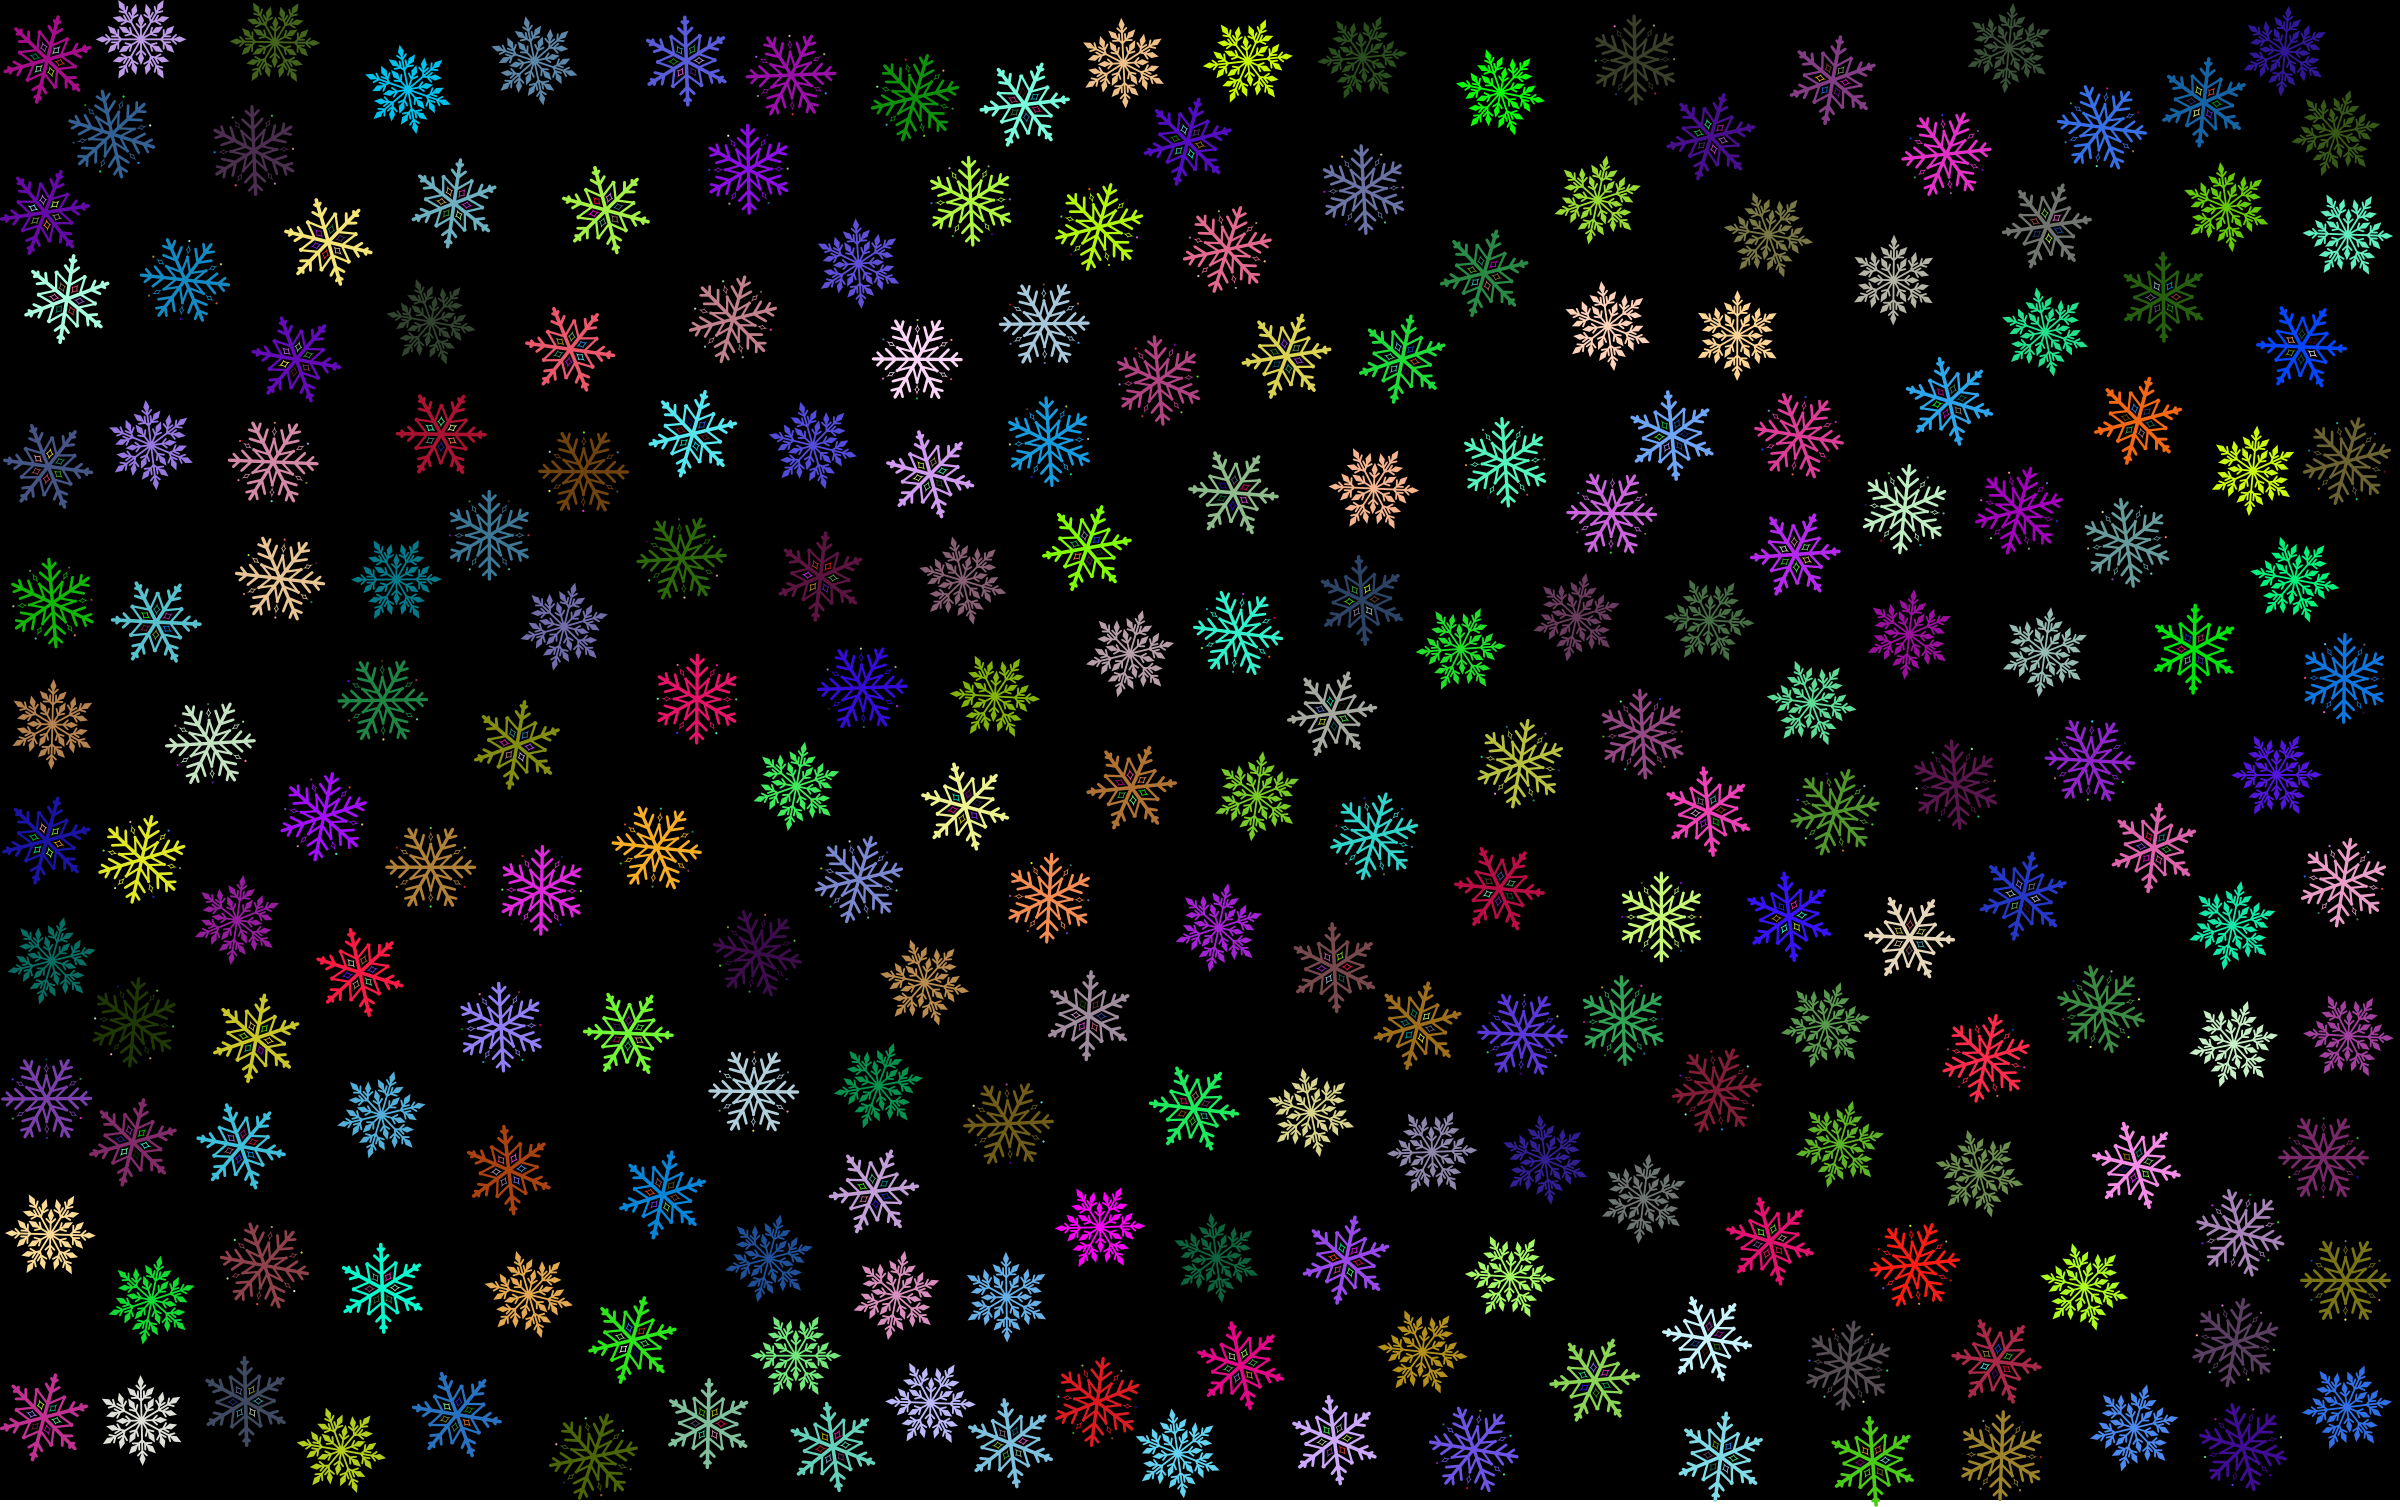 Prismatic Snowflakes Pattern by GDJ